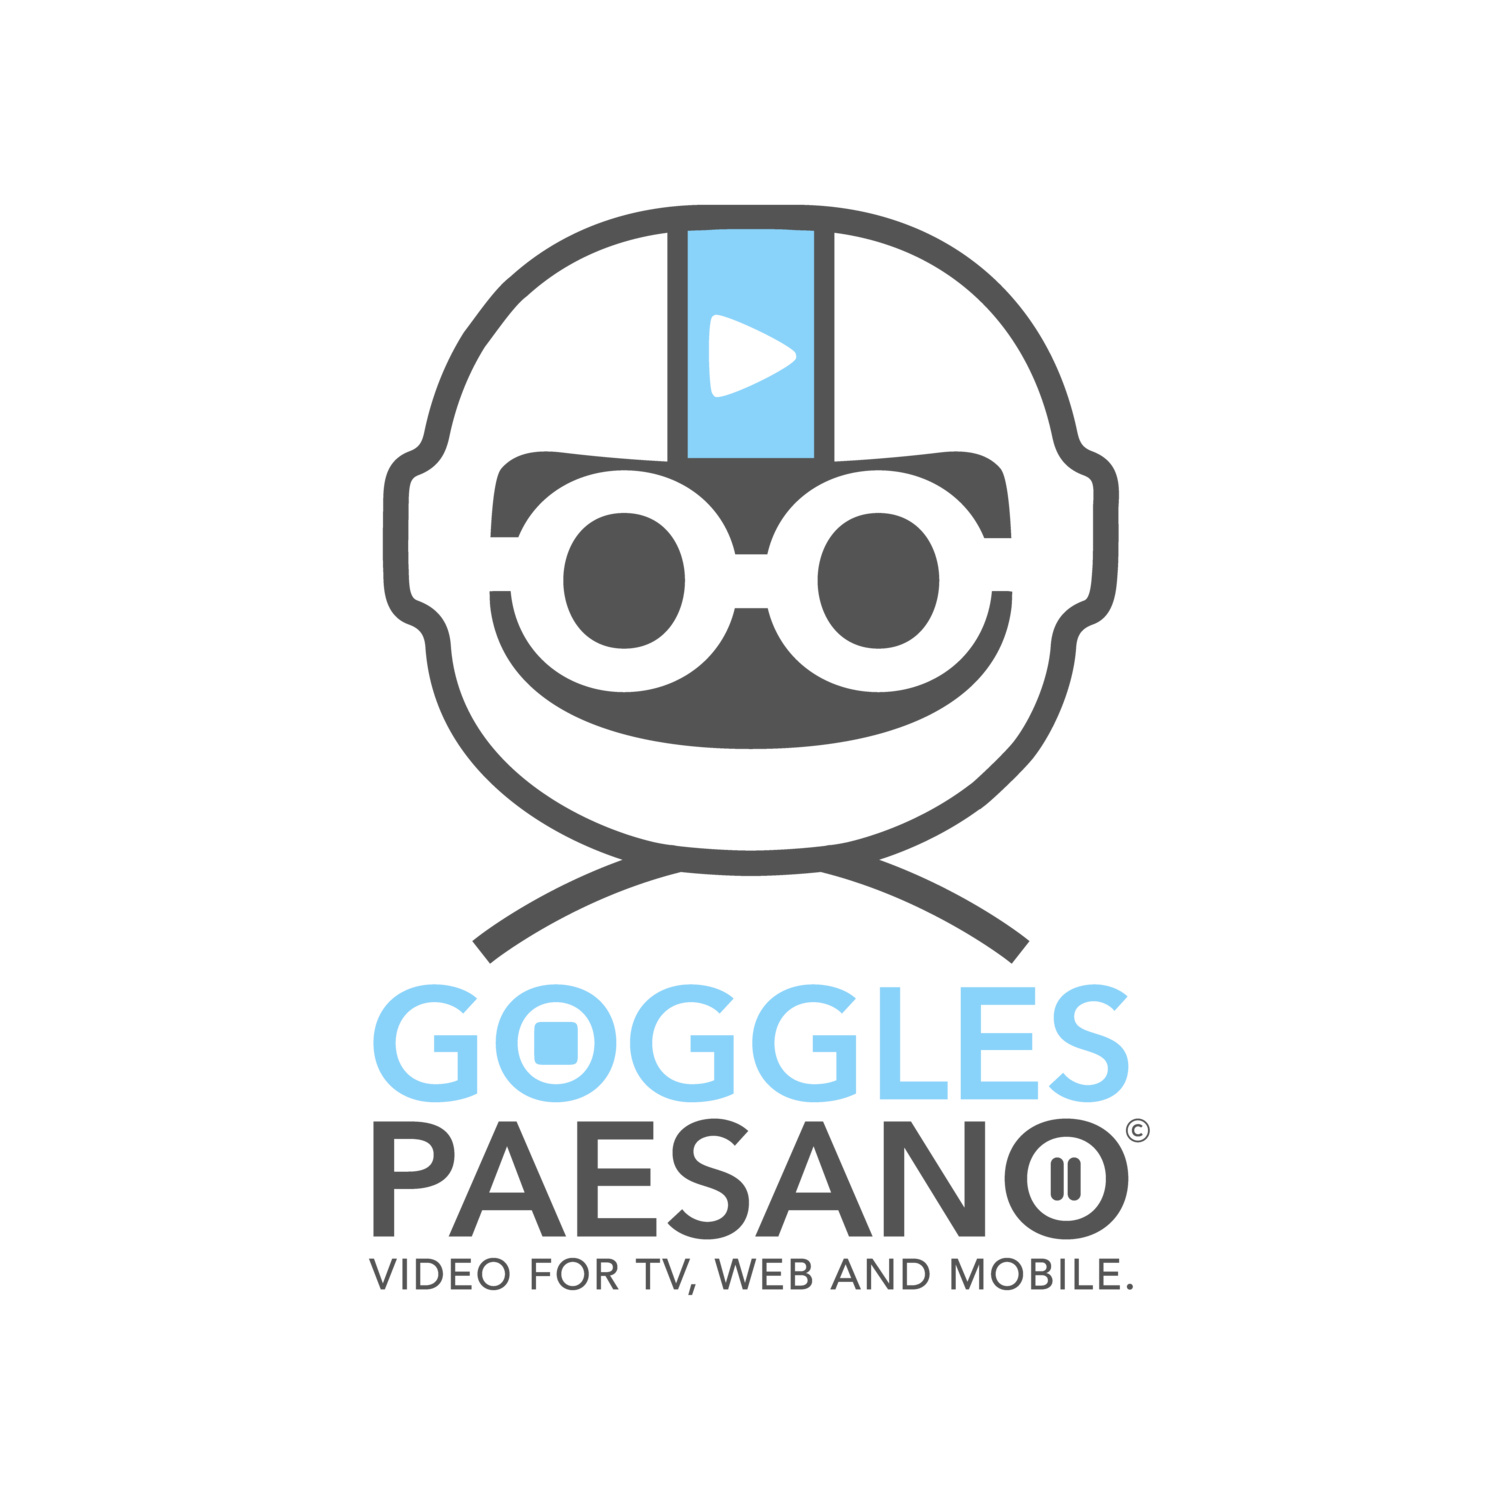 Goggles Paesano Video